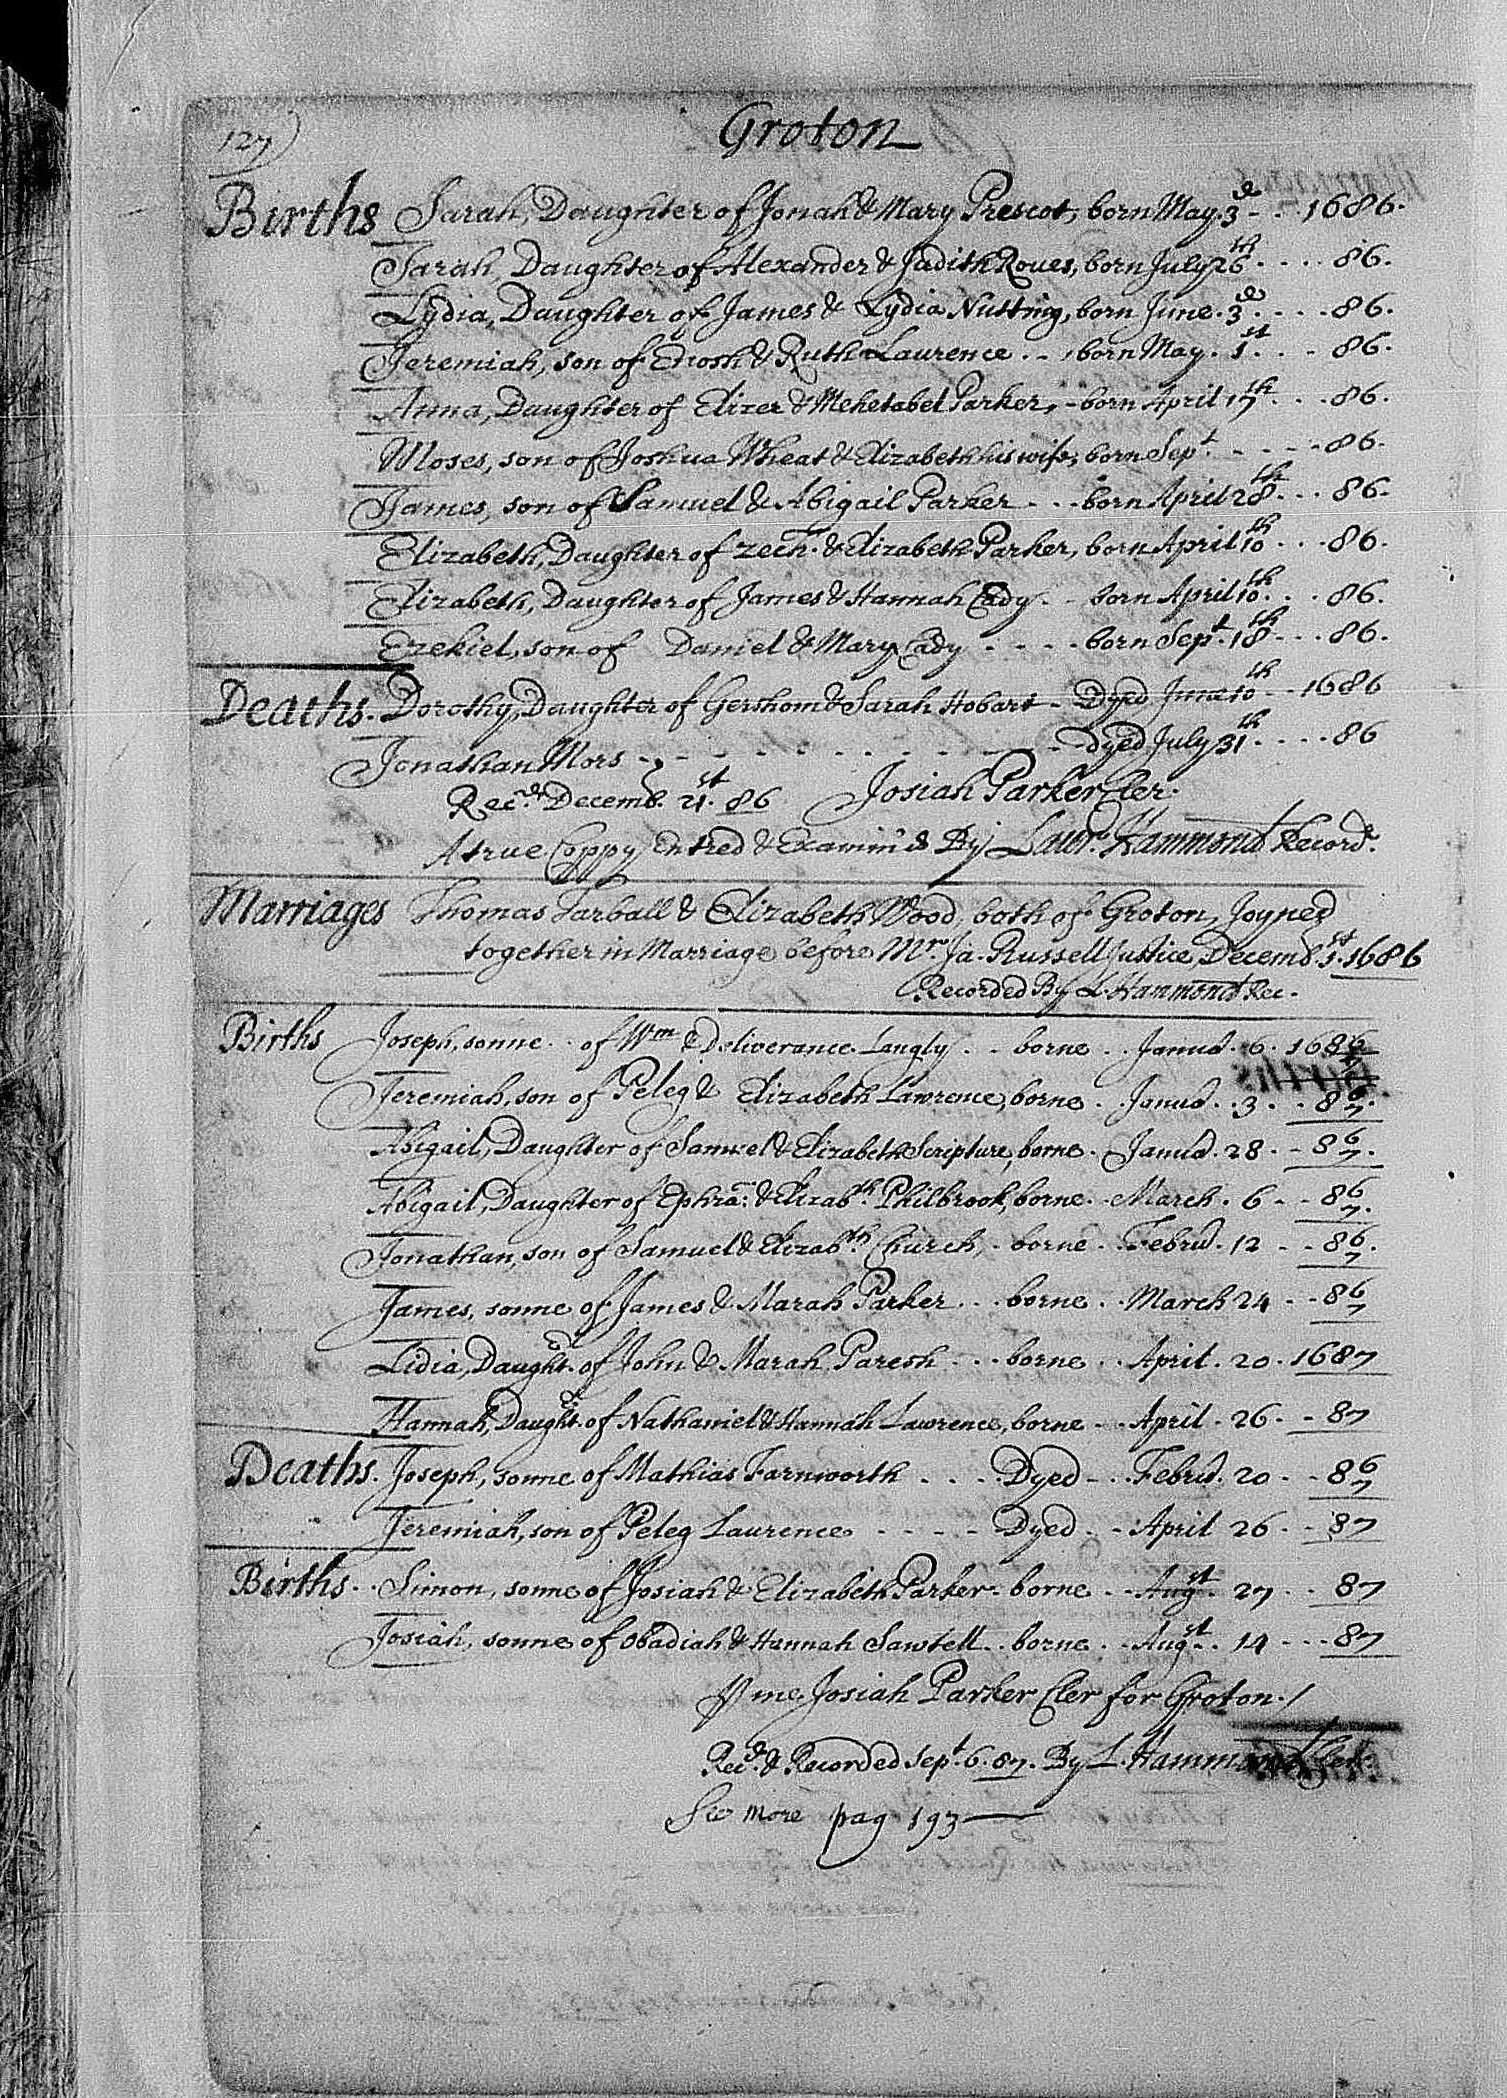 Parrish, Lydia 1687 birth register